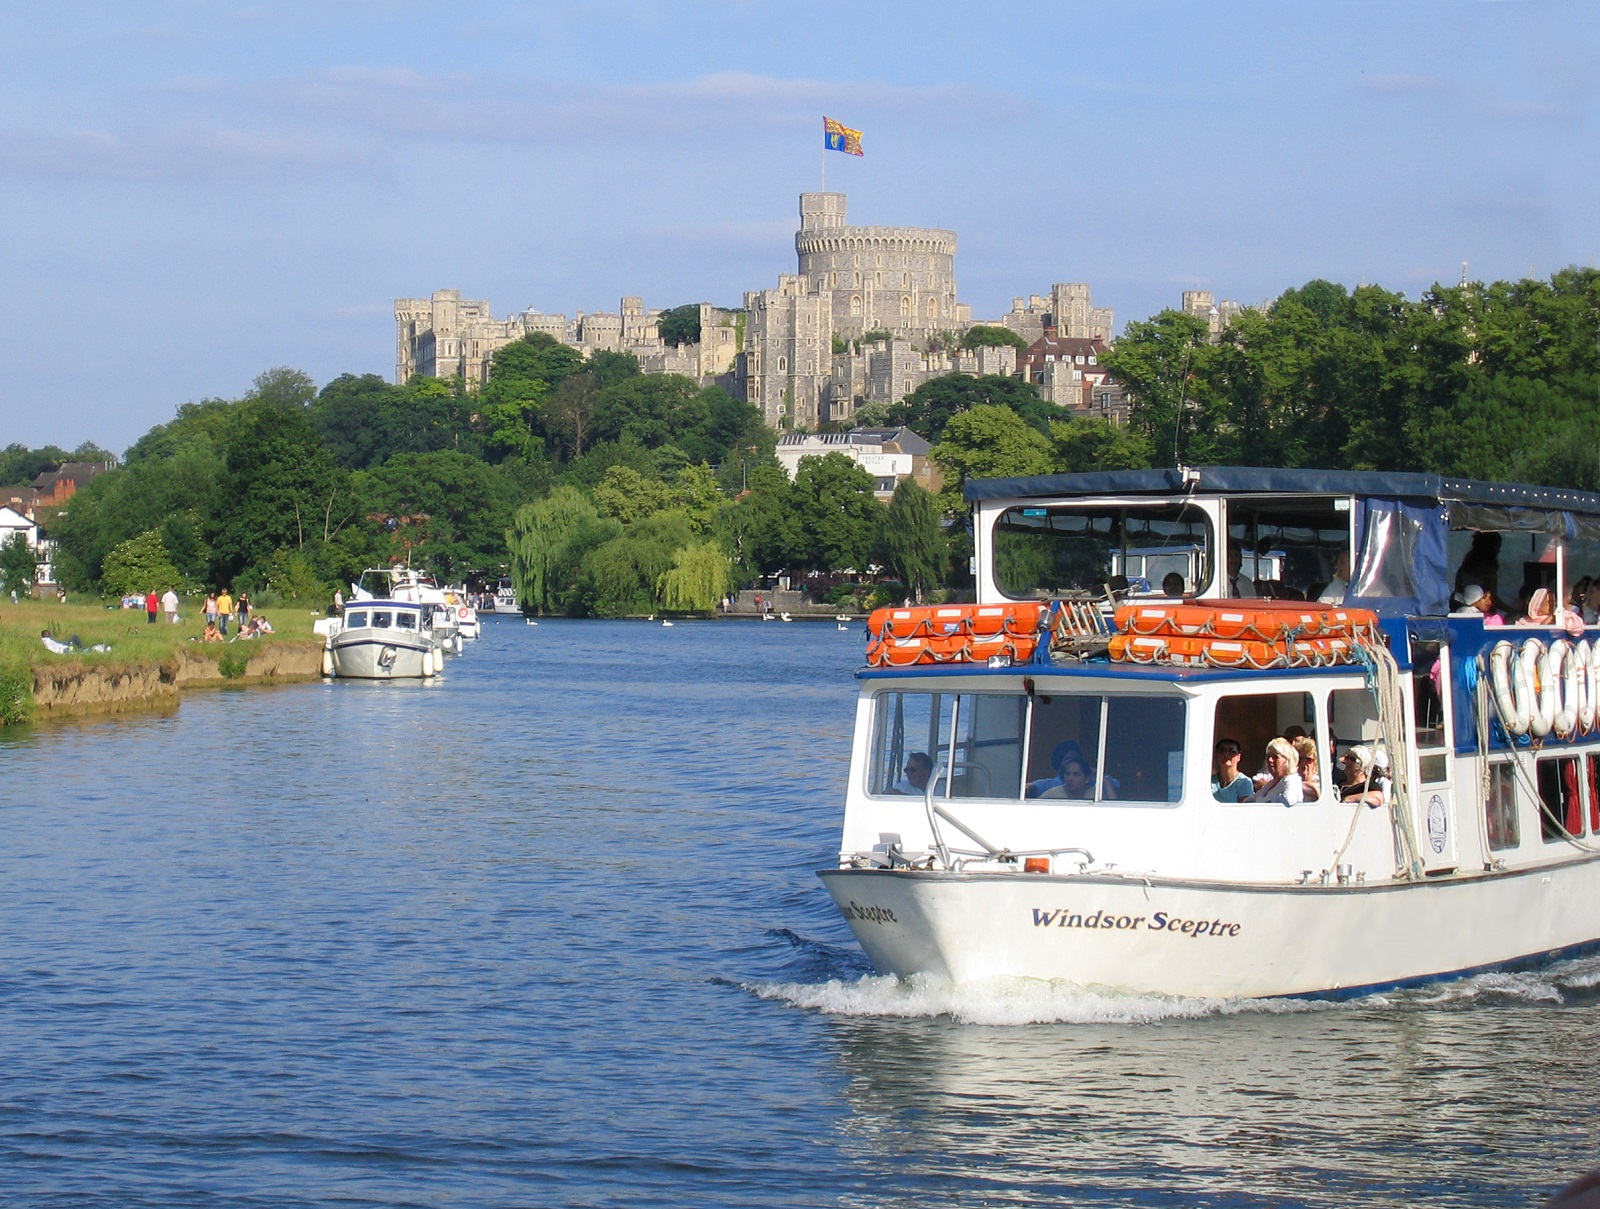 A boat - the Windsor Sceptre - travels on the river with Windsor Castle in the background. Photo is credit windsor.gov.uk